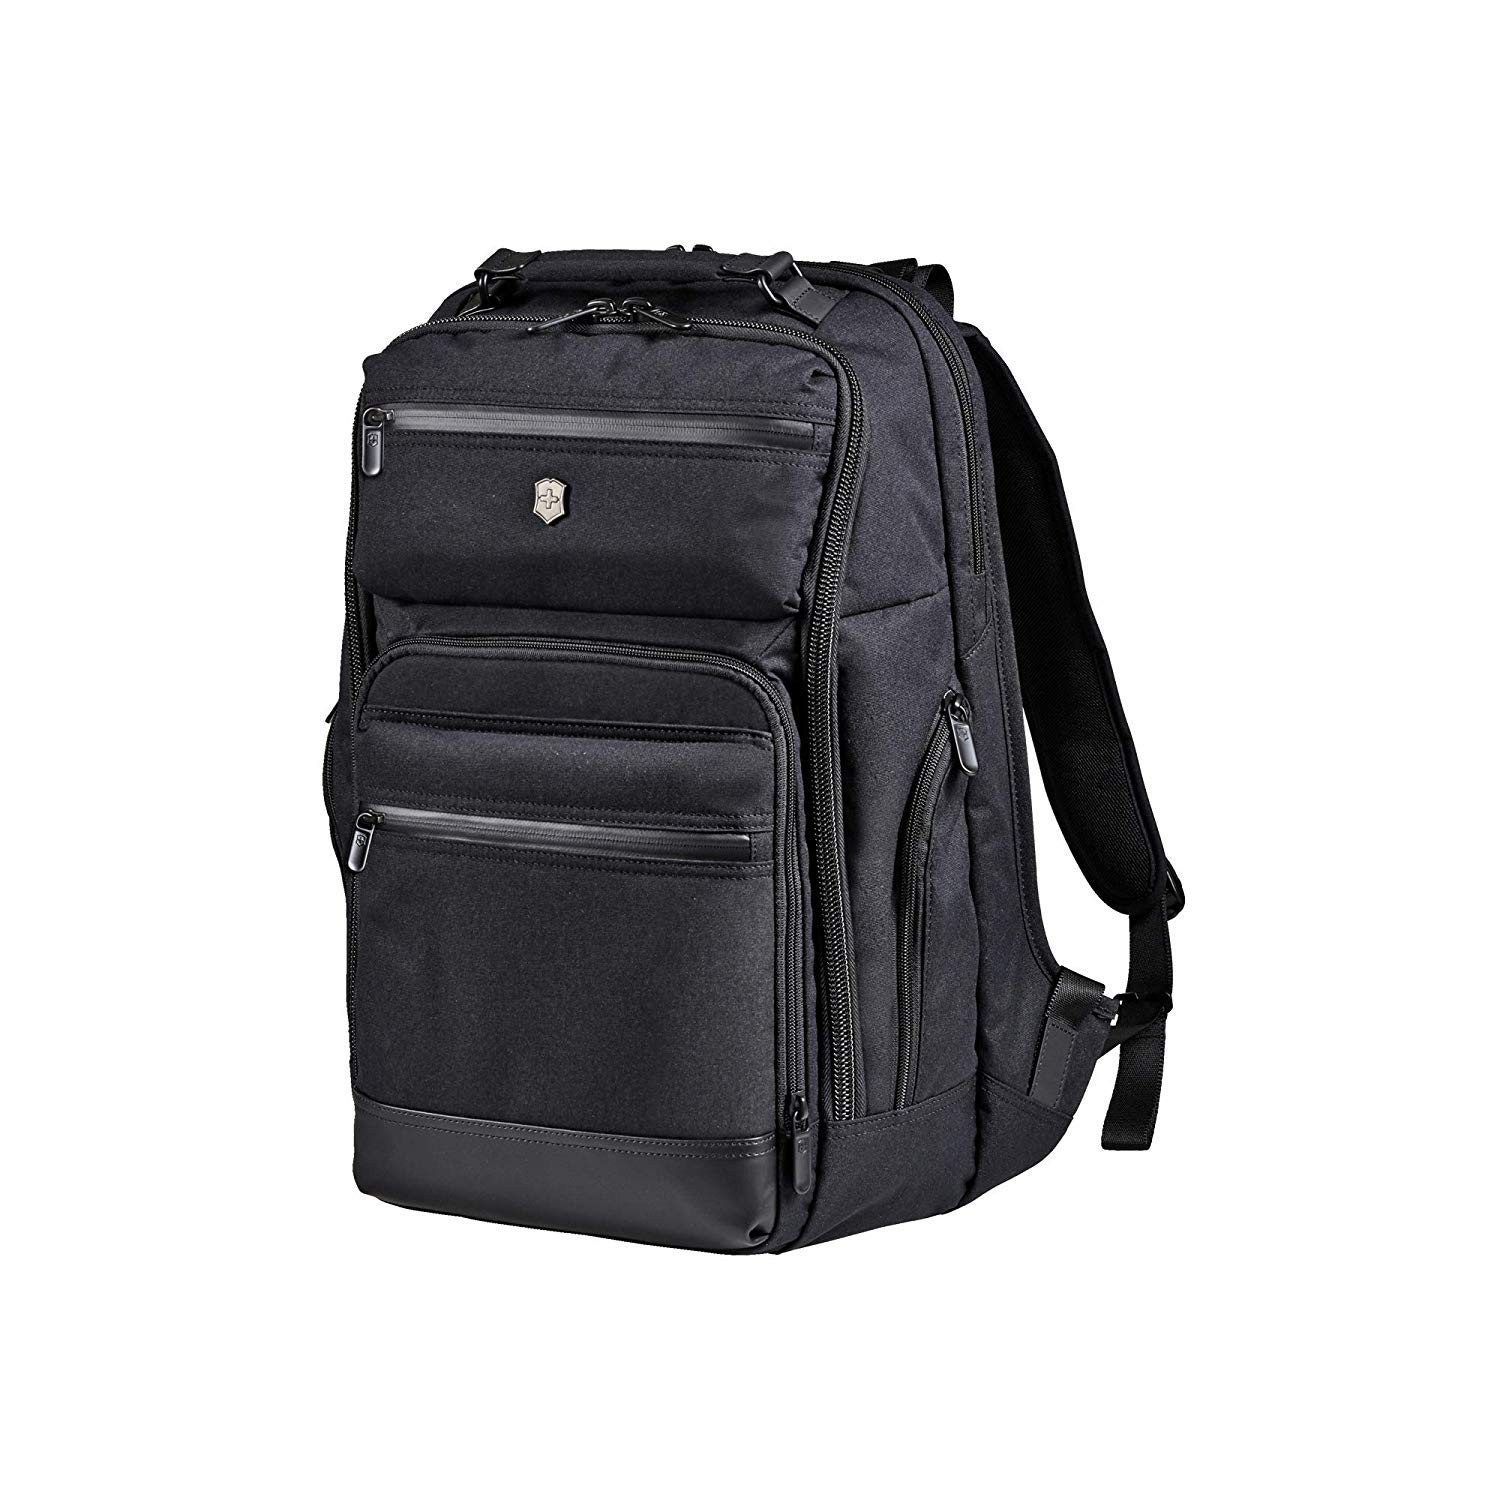 Victorinox Architecture Urban Rath Laptop Backpack, Black, One Size